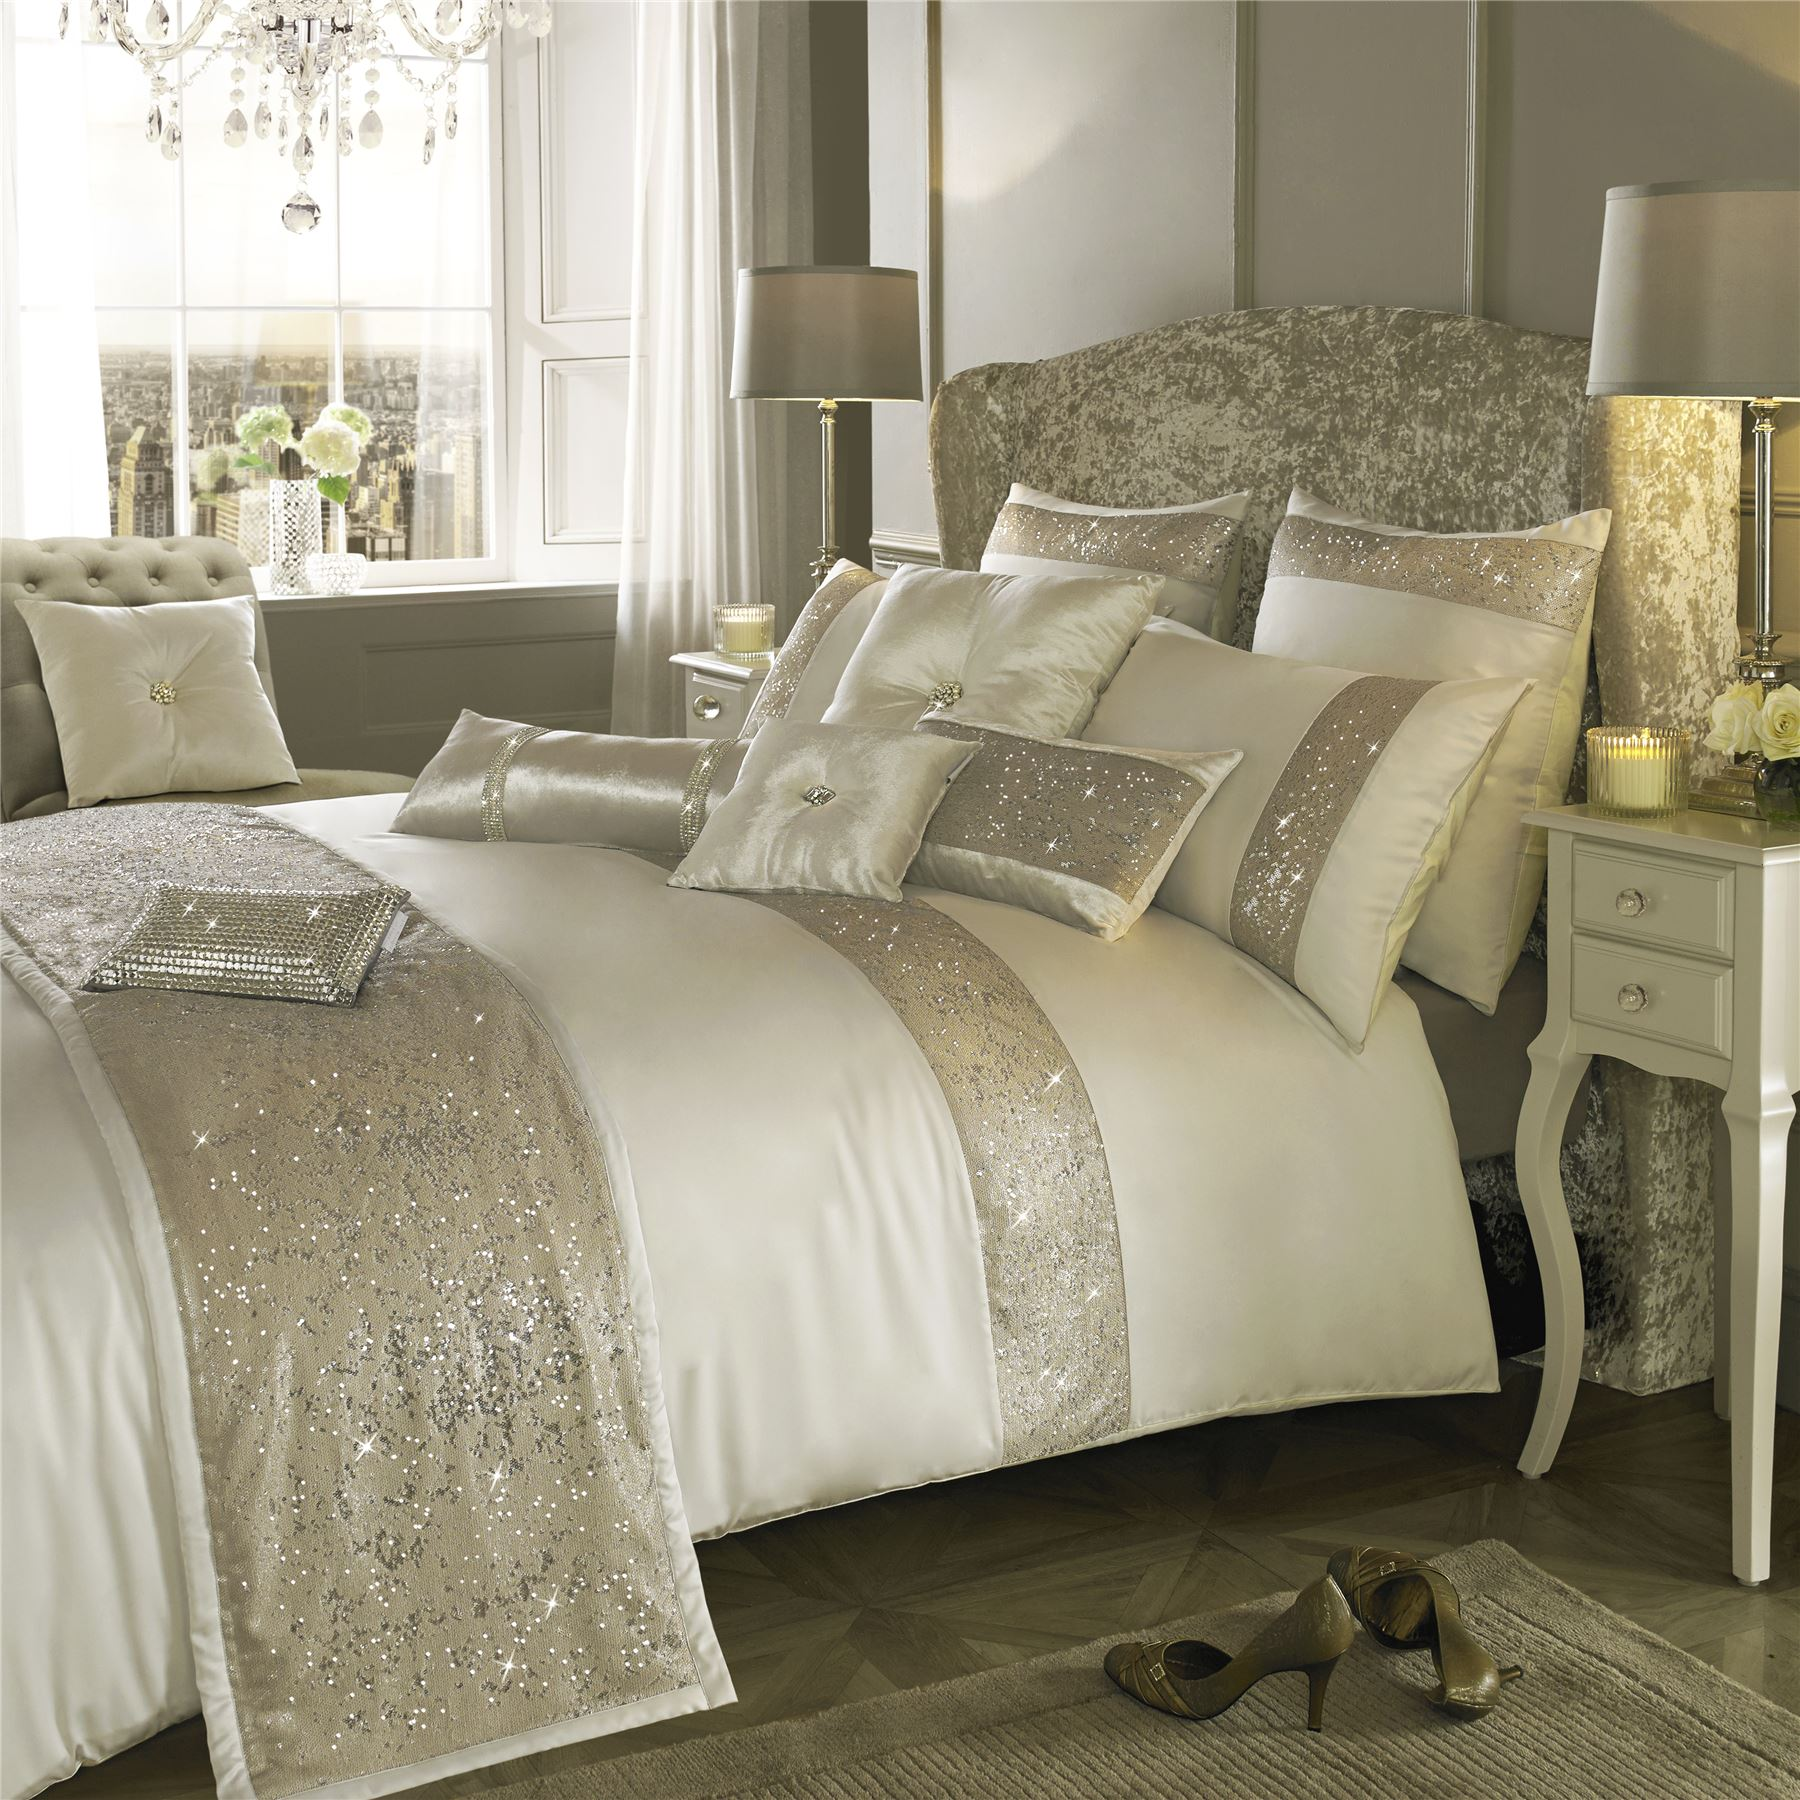 with distressed designer inc floor bed in king new bedding windows pcb homeaway clean ceiling to style headboard chic fab